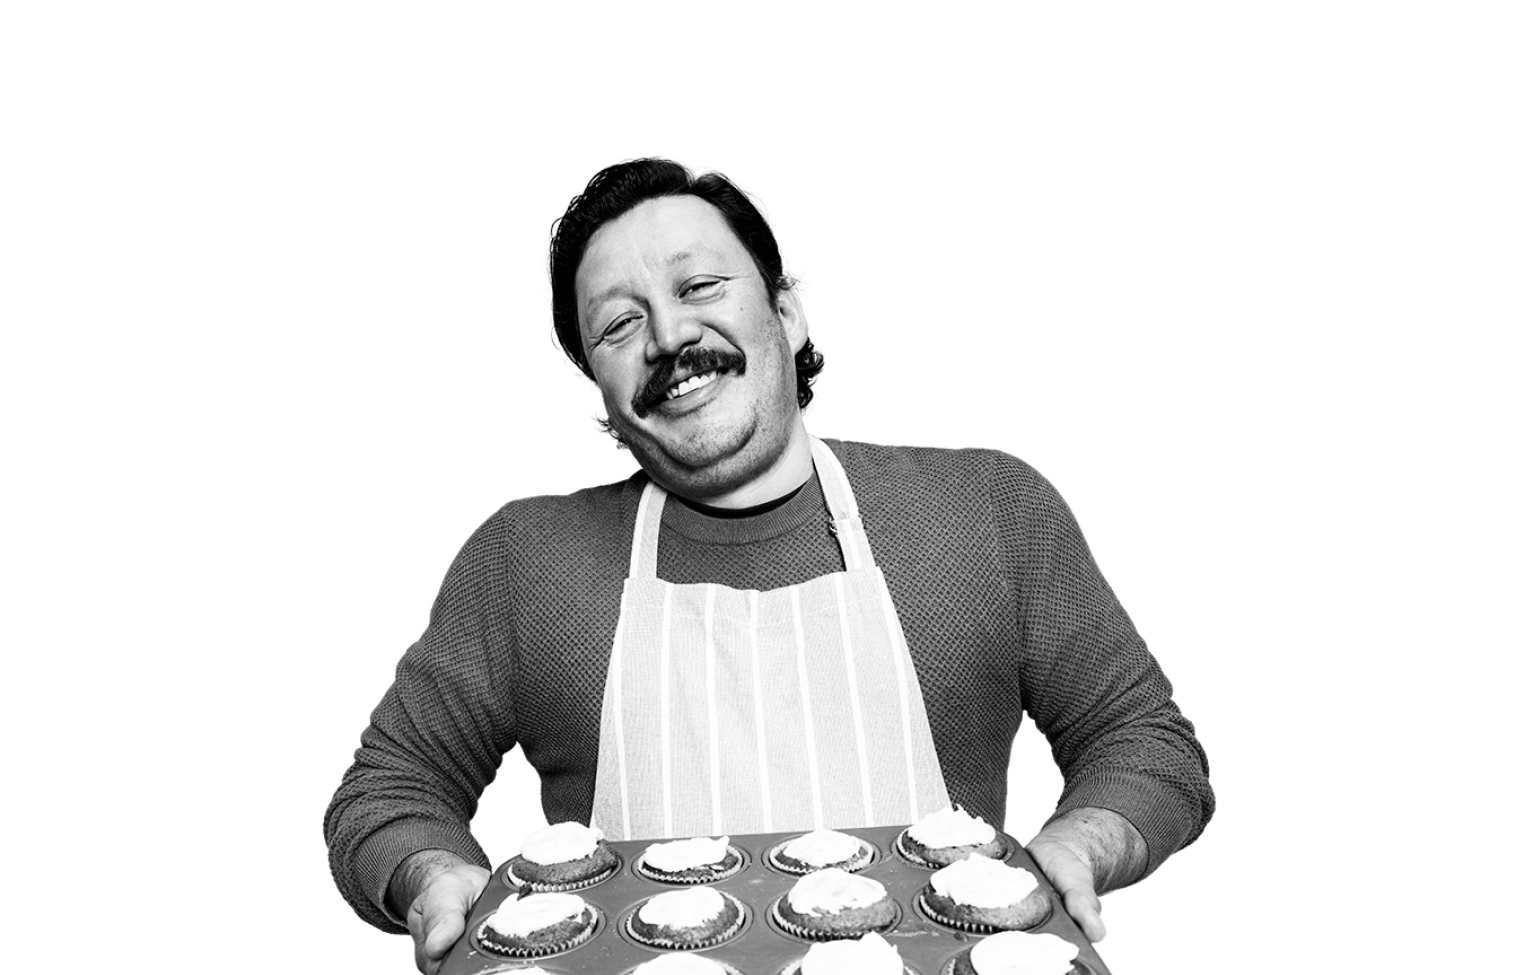 man holding tray of cupcakes